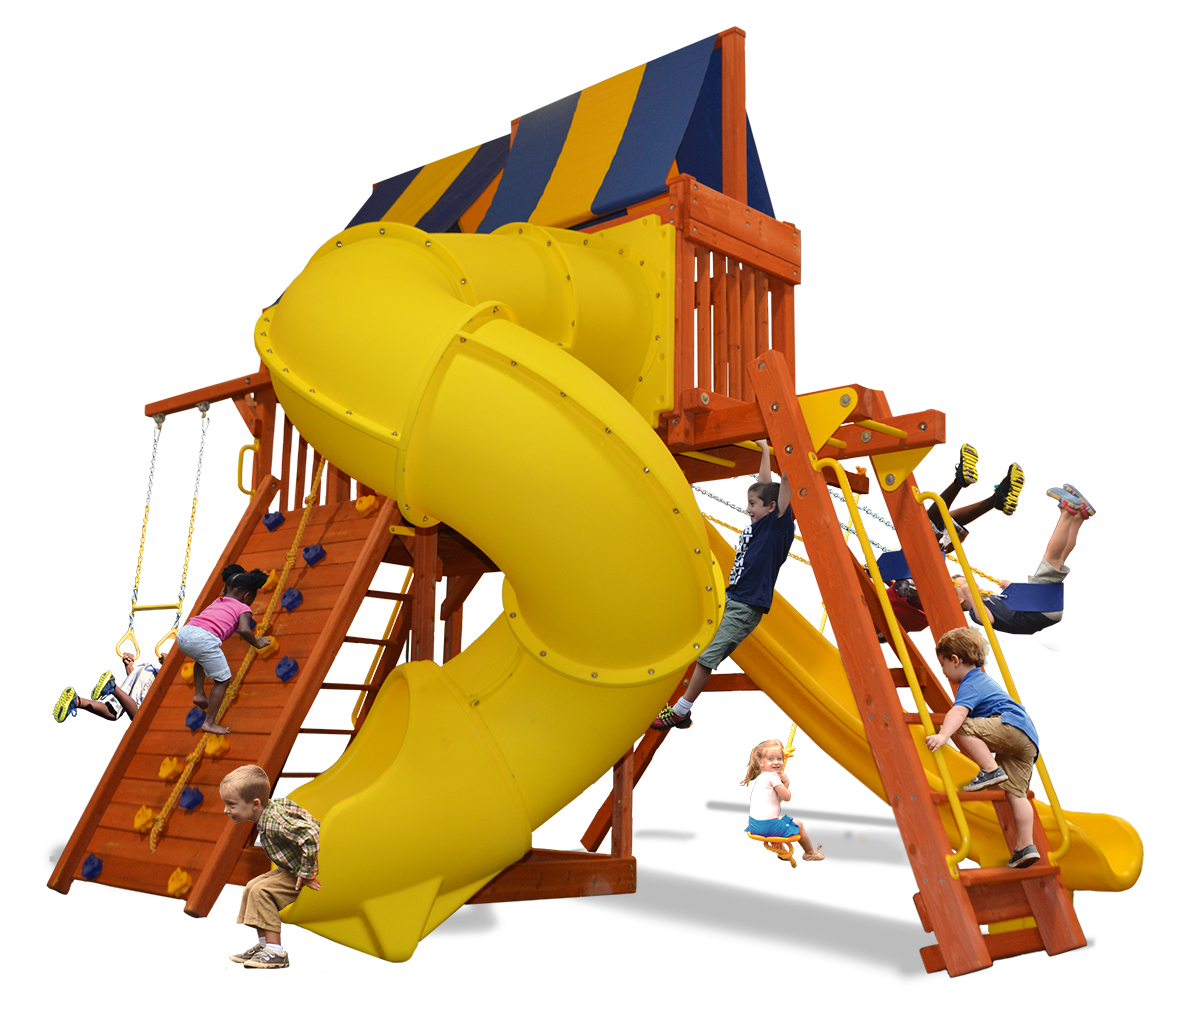 Supreme Fort Combo 5 play set with monkey bars, skyloft and corkscrew slide